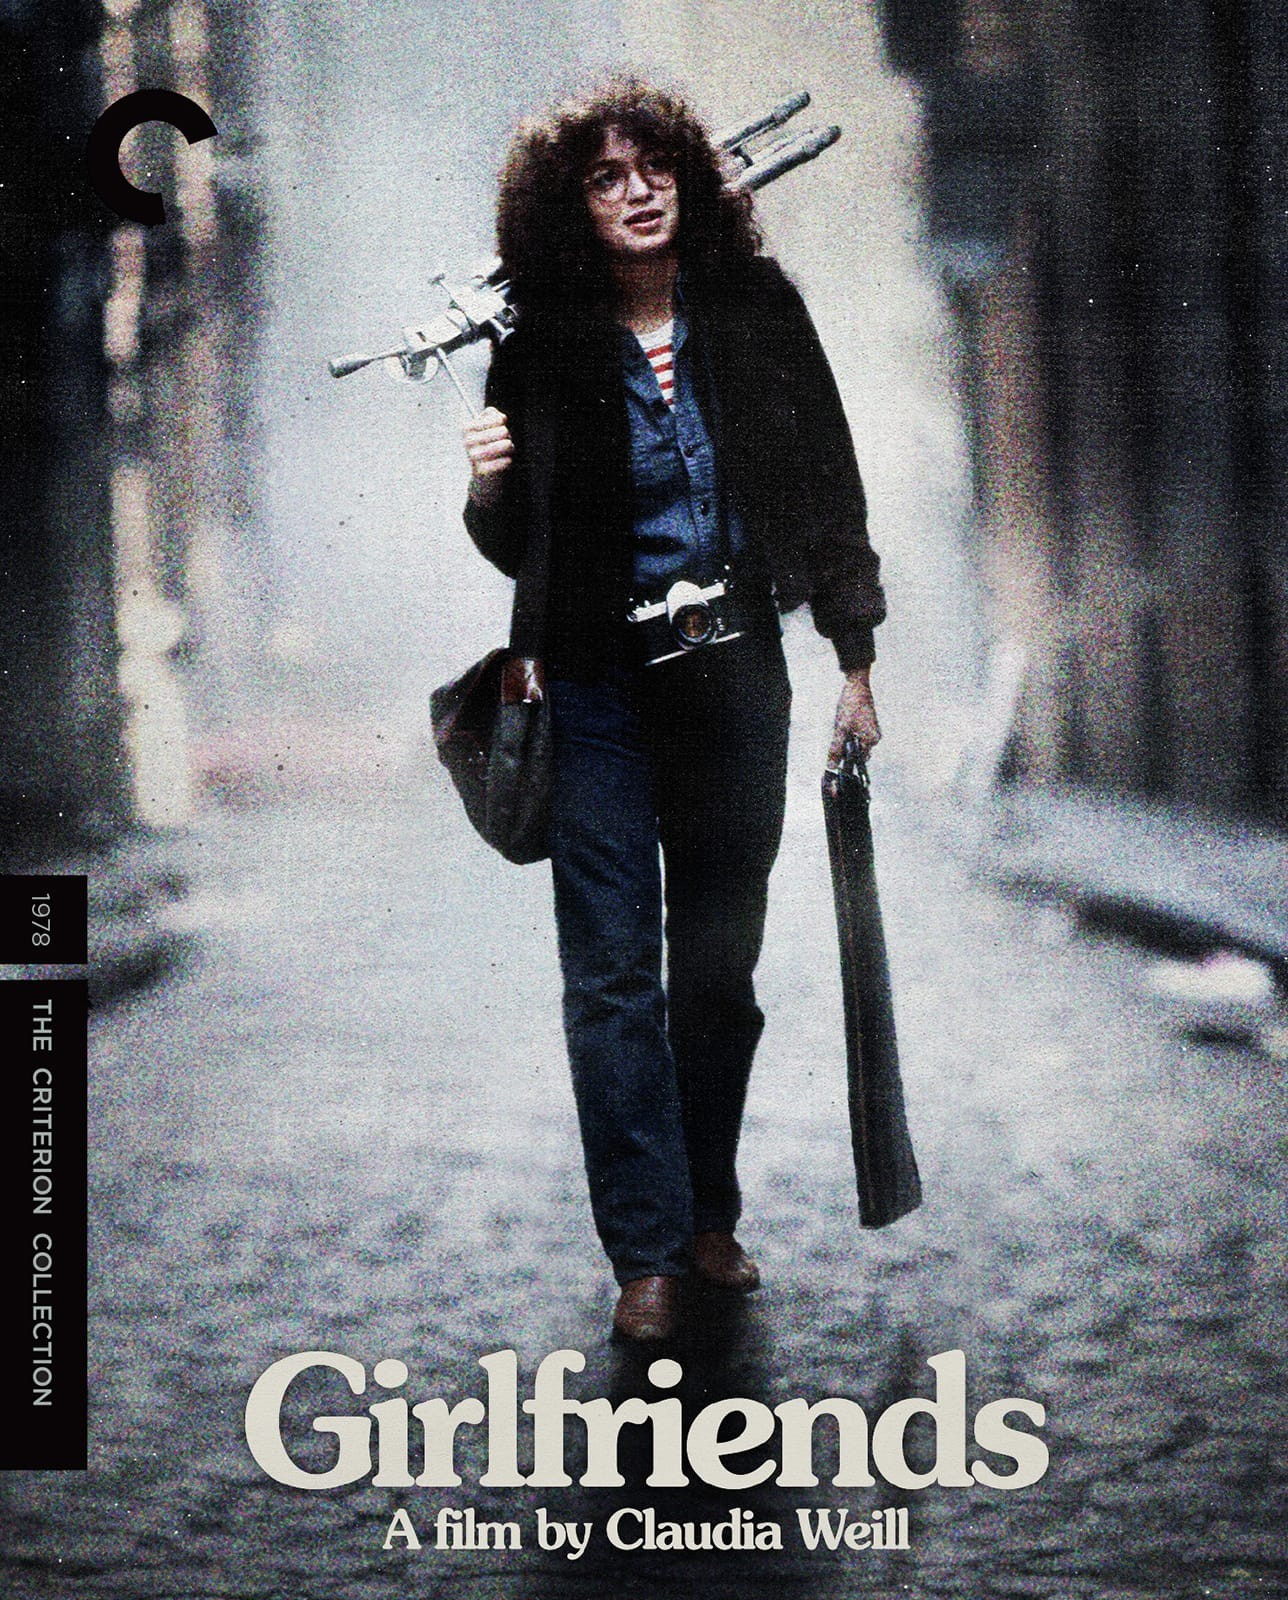 Girlfriends (1978) | The Criterion Collection